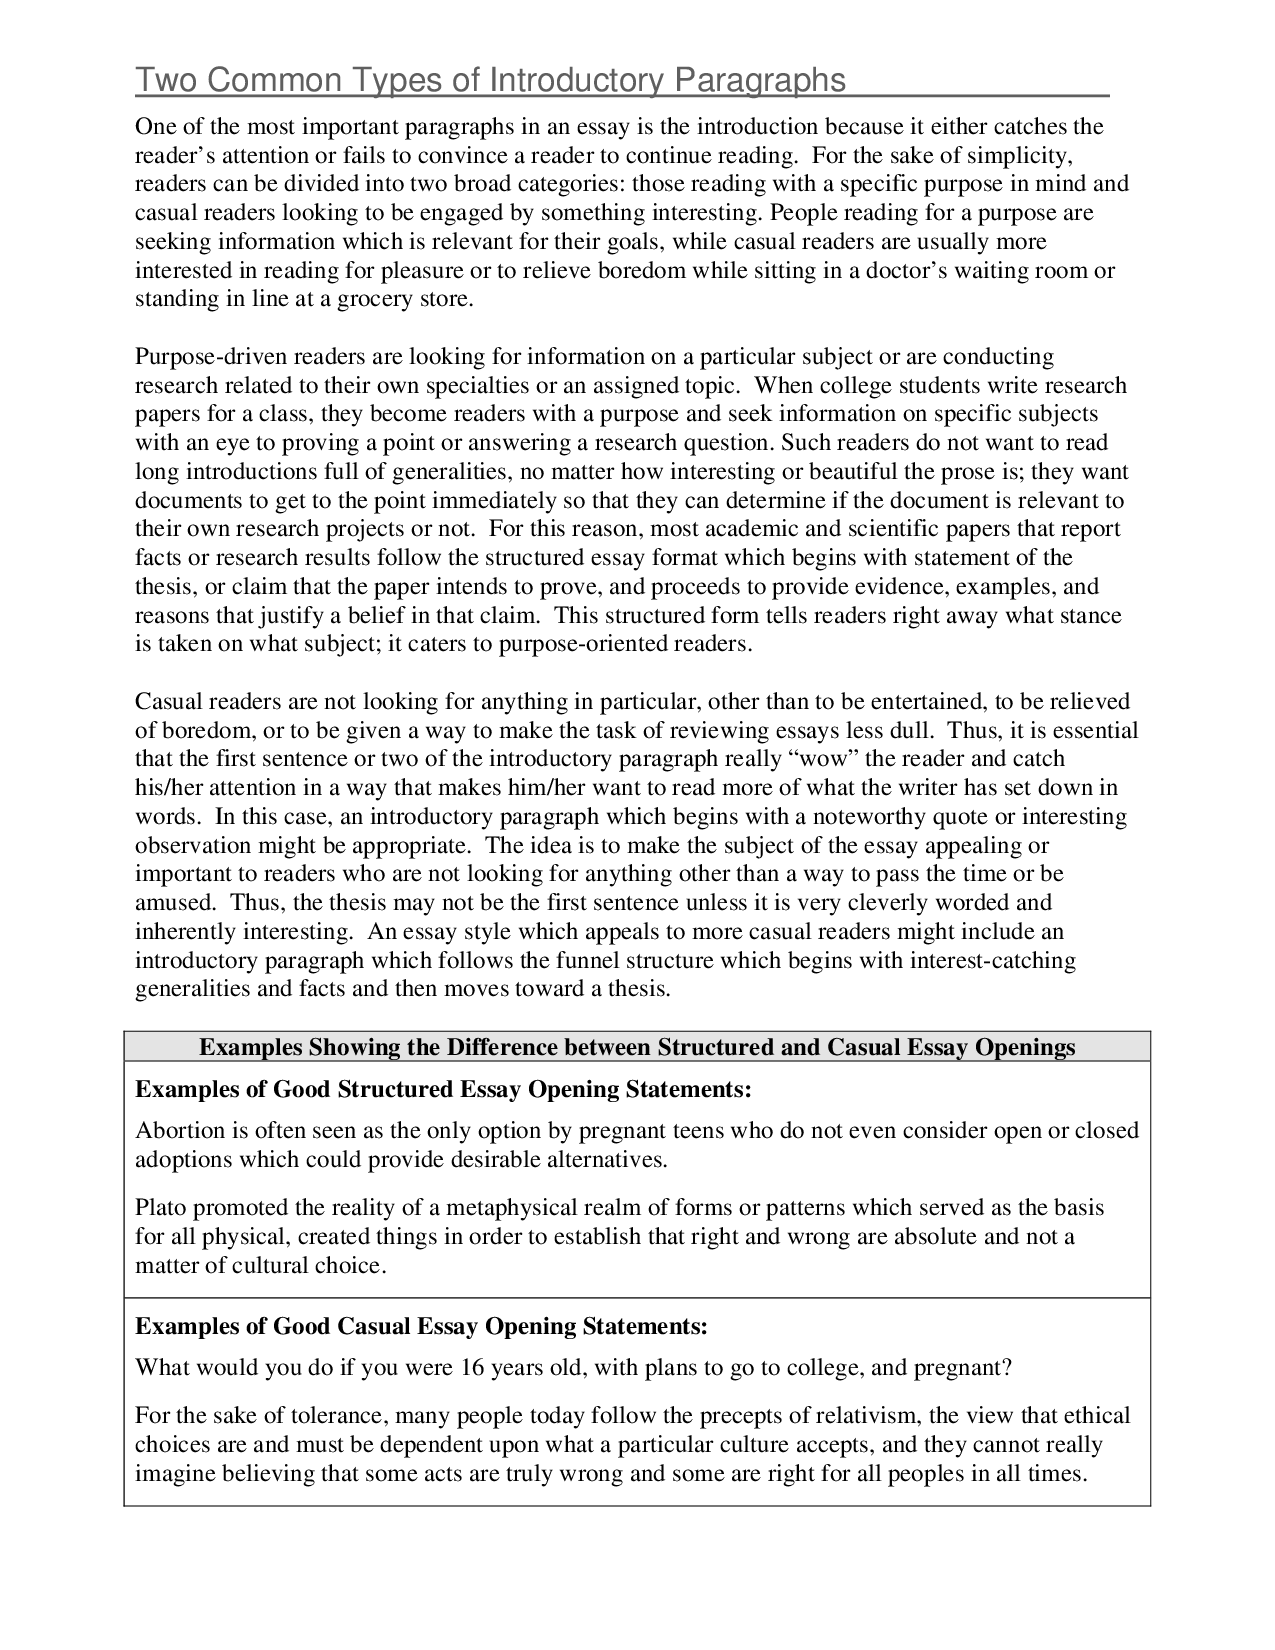 writing for success flatworld 9 4 writing introductory and concluding paragraphs